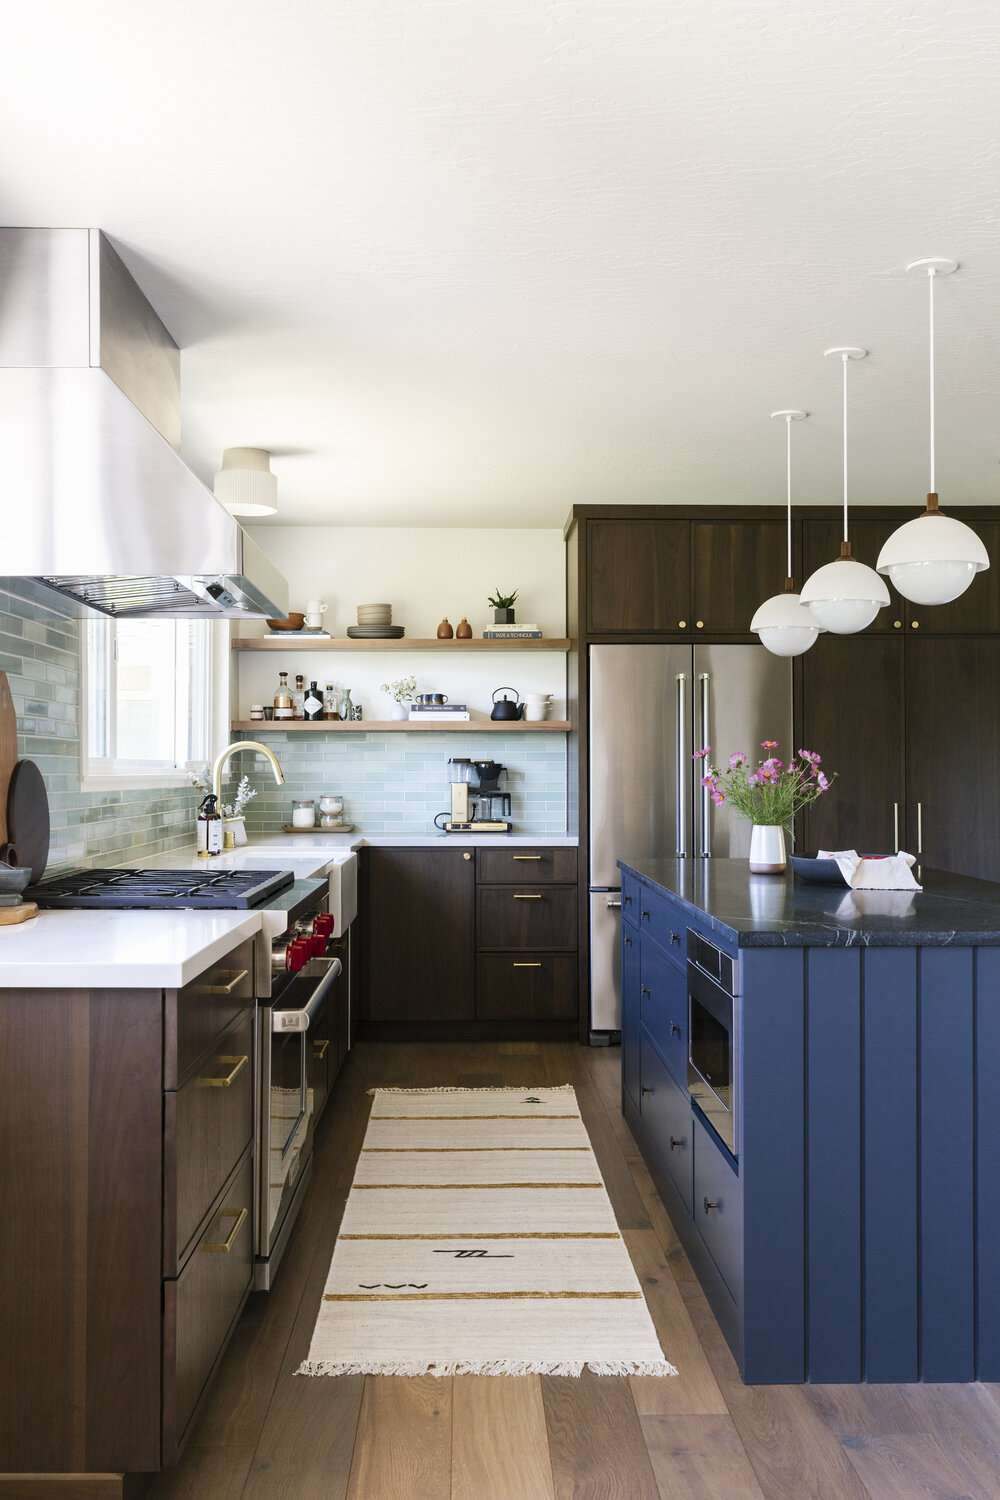 best kitchen ideas - open shelving kitchen with dark cabinets and blue island